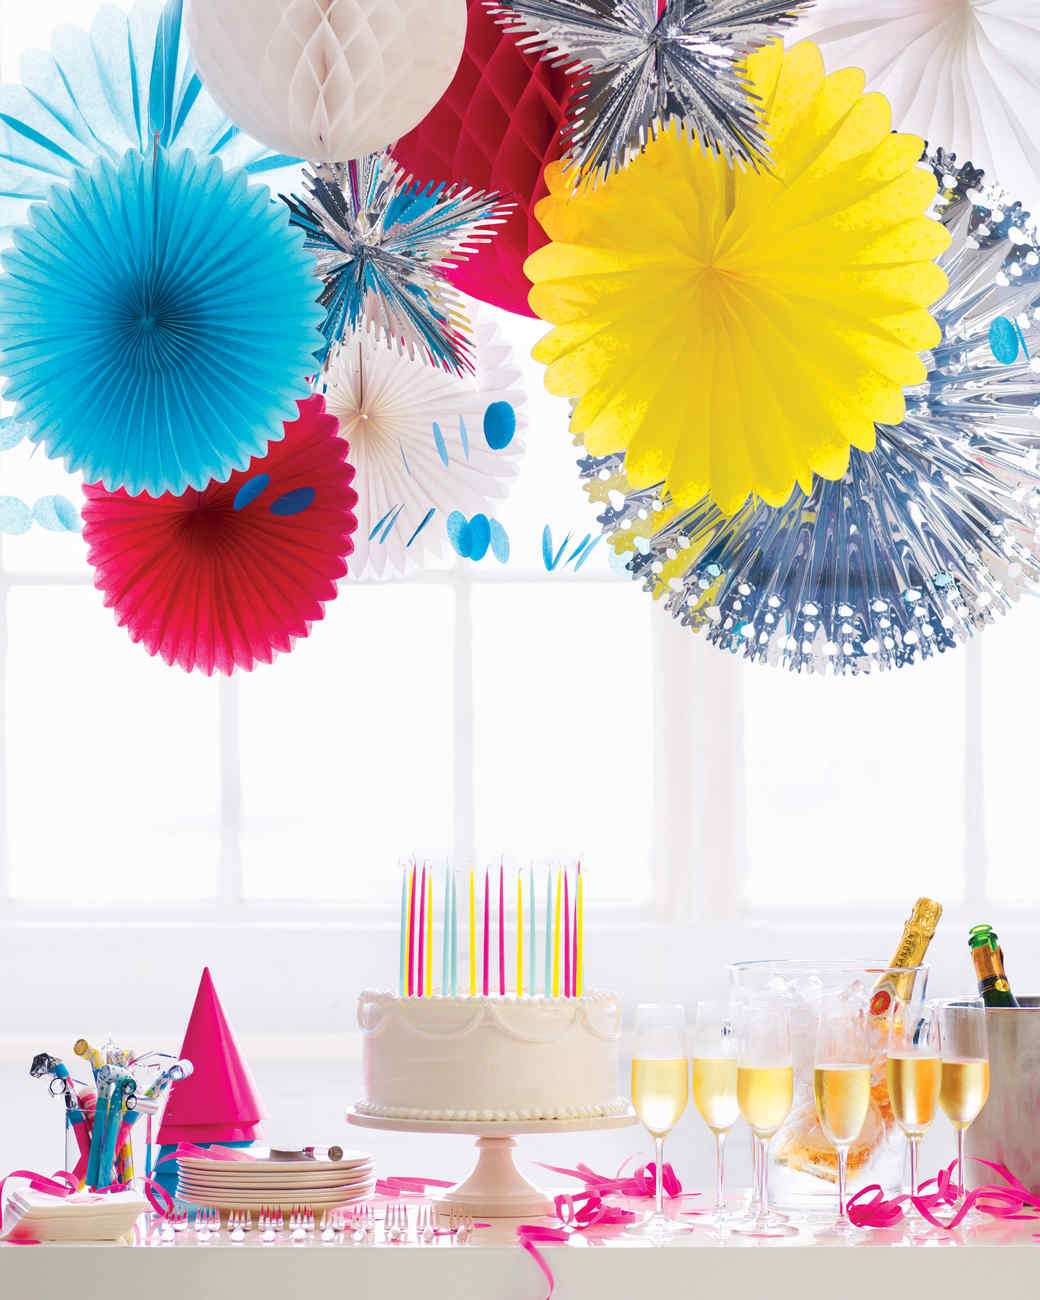 7 Tips to Hosting a Stress-Free Kids' Birthday Party